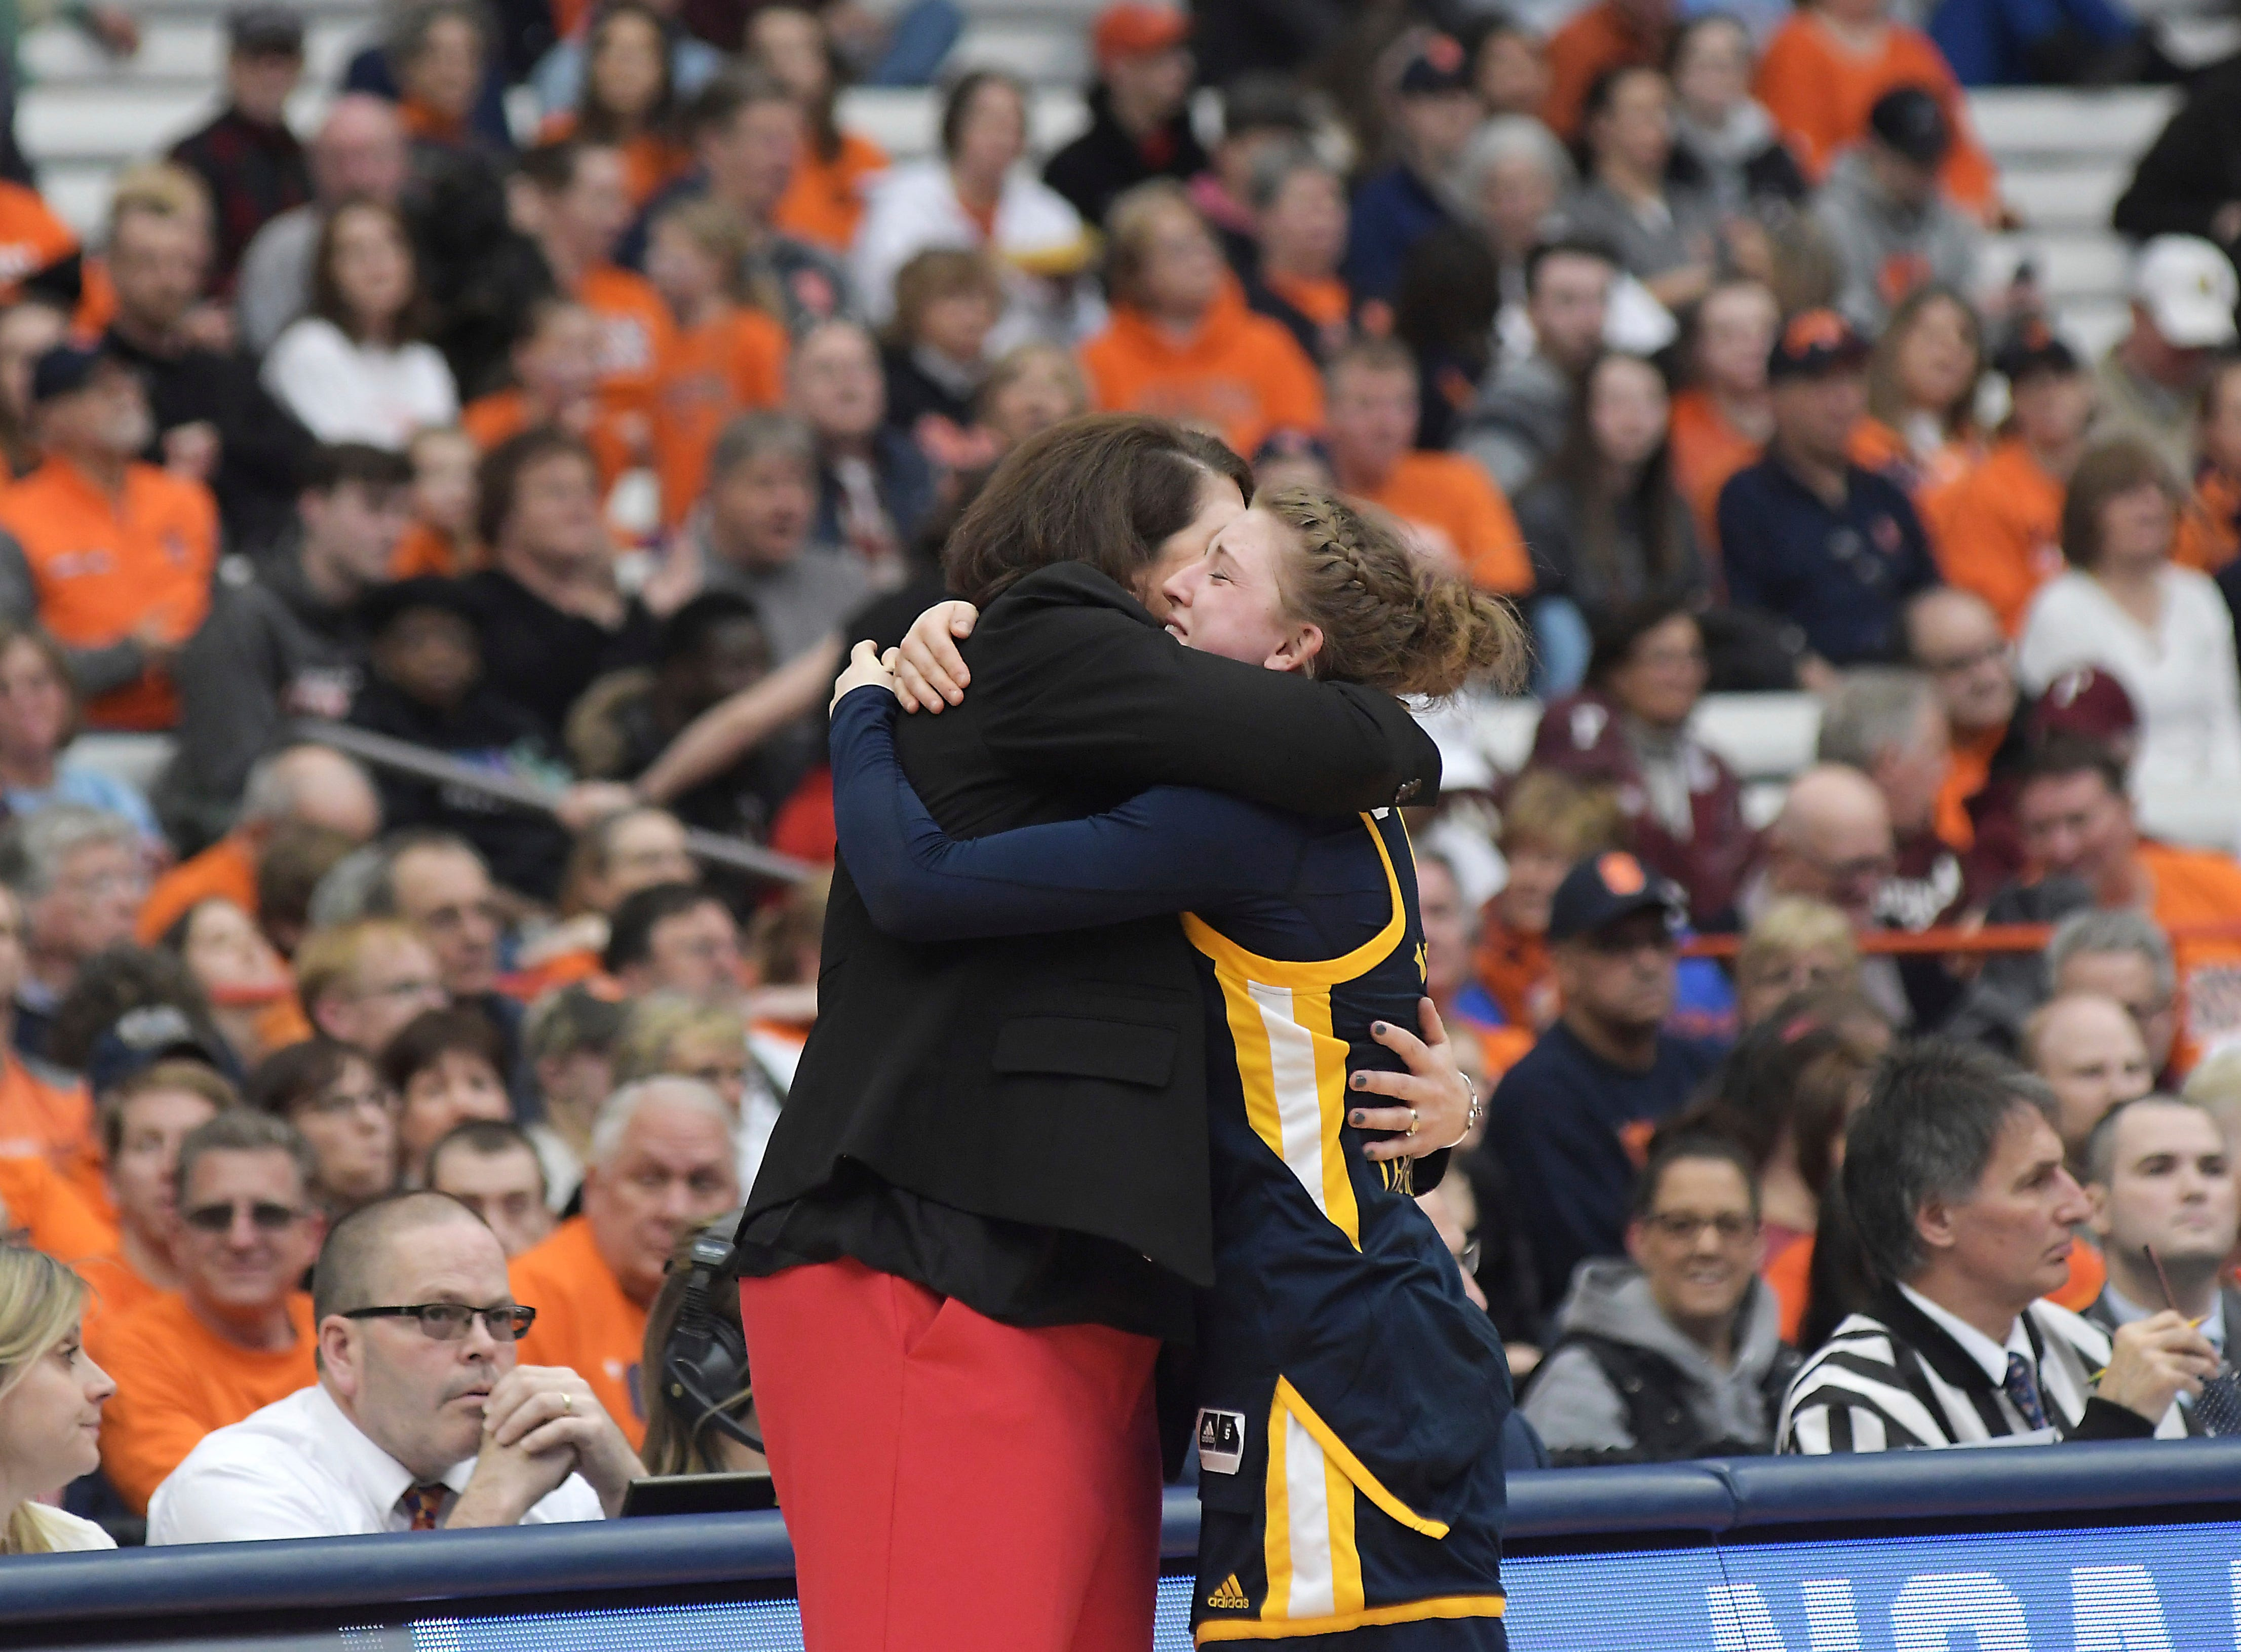 Quinnipiac head coach, Tricia Fabbri, left, hugs Edel Thornton after a first-round game against South Dakota State in the NCAA women's college basketball tournament in Syracuse, N.Y., Saturday, March 23, 2019. (AP Photo/Heather Ainsworth)